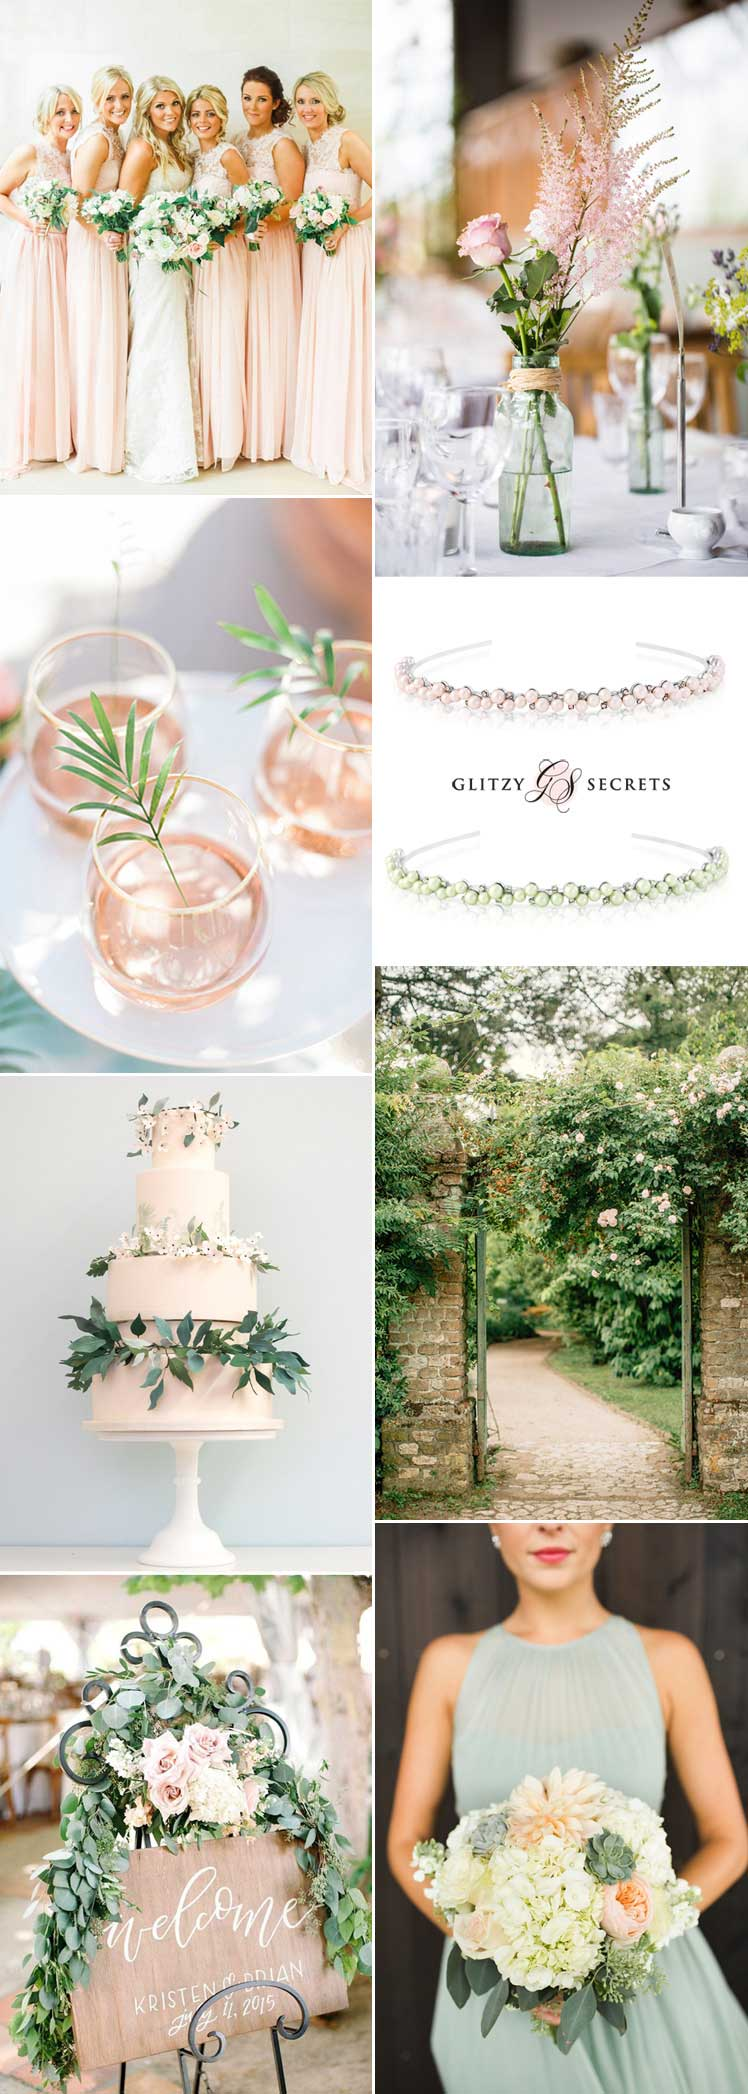 Pastel pink and green wedding inspiration ideas